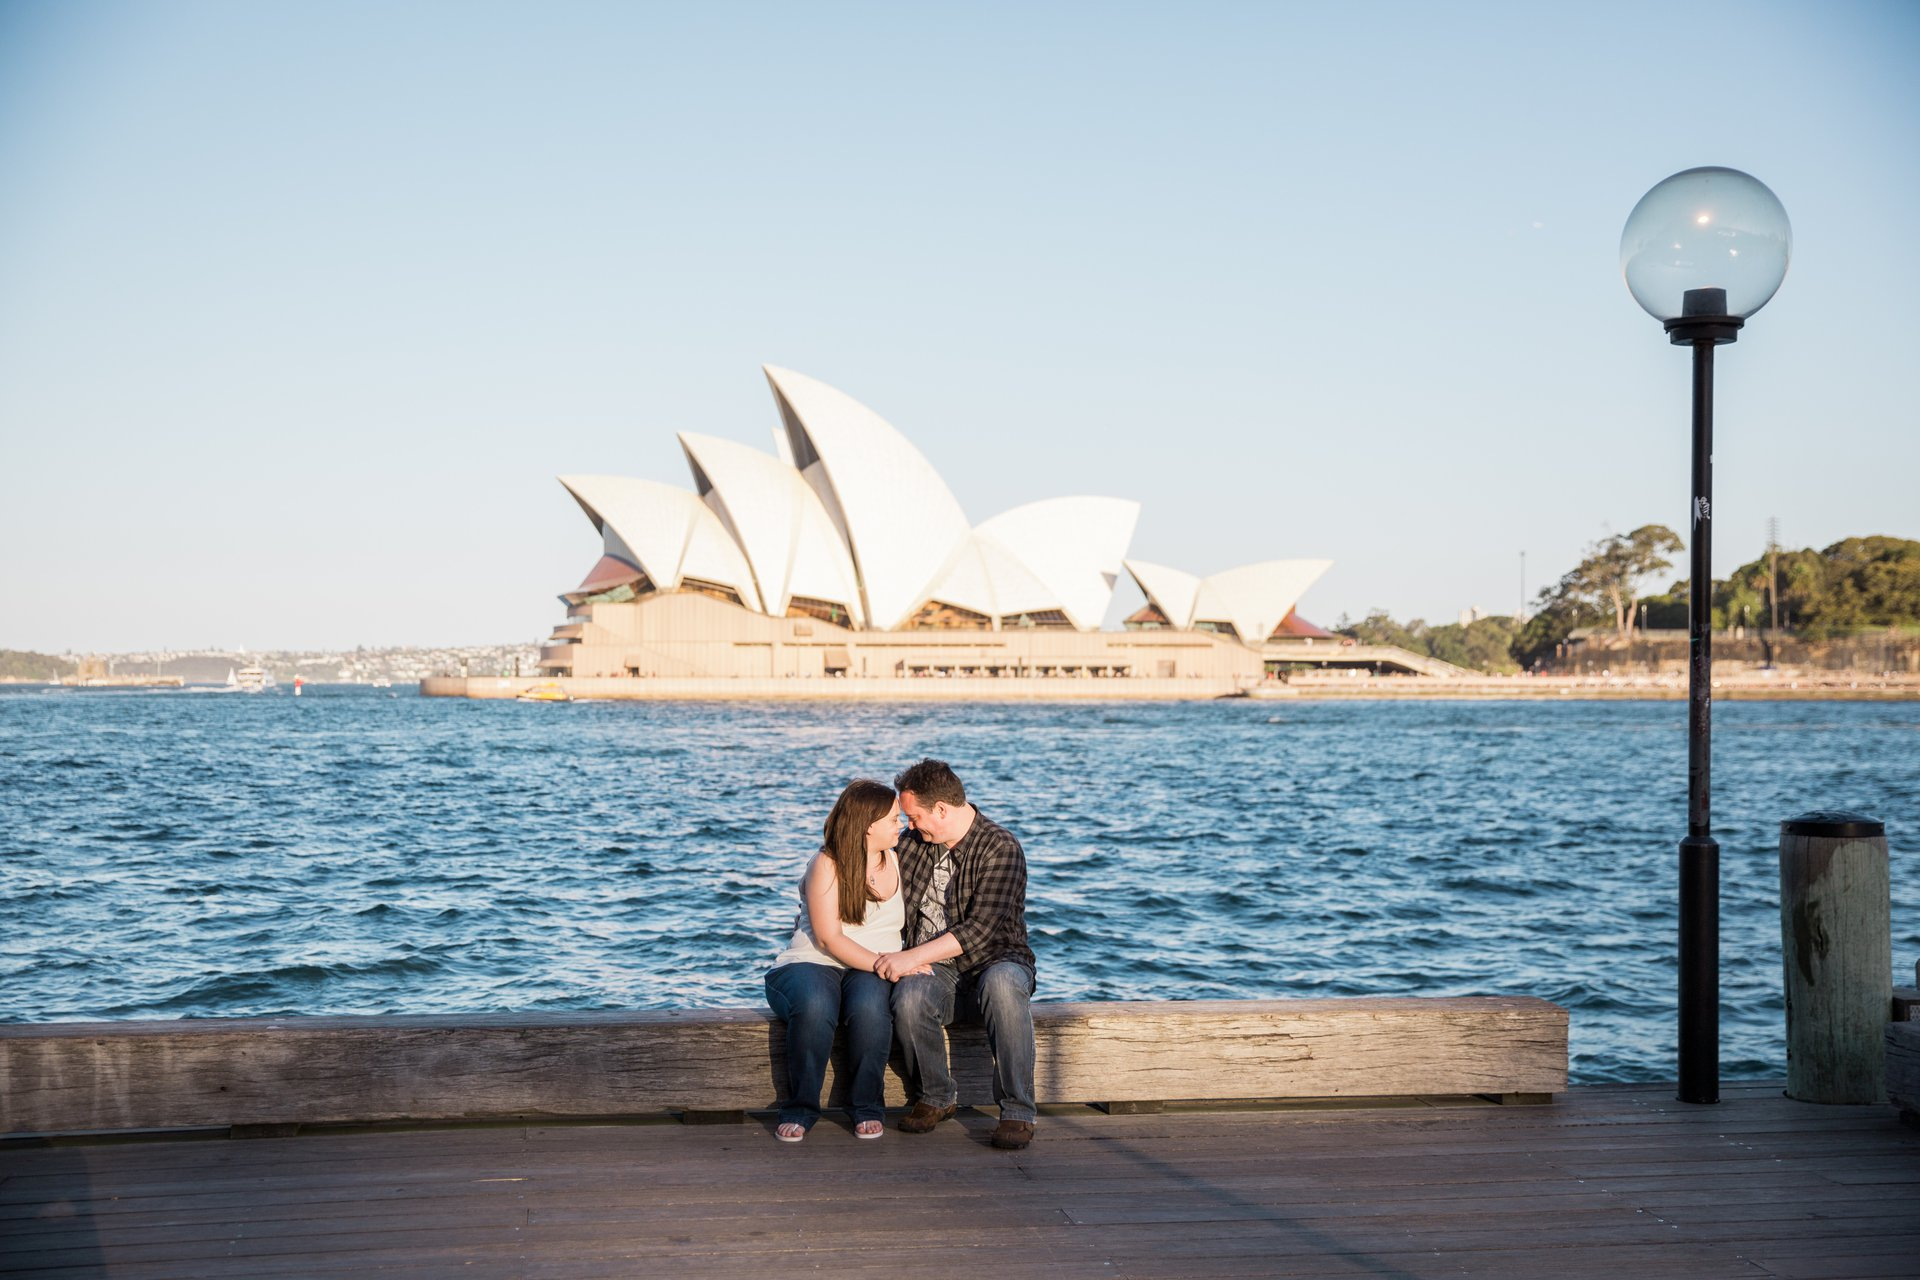 Flytographer Travel Story - Our Sydney adventure 2019